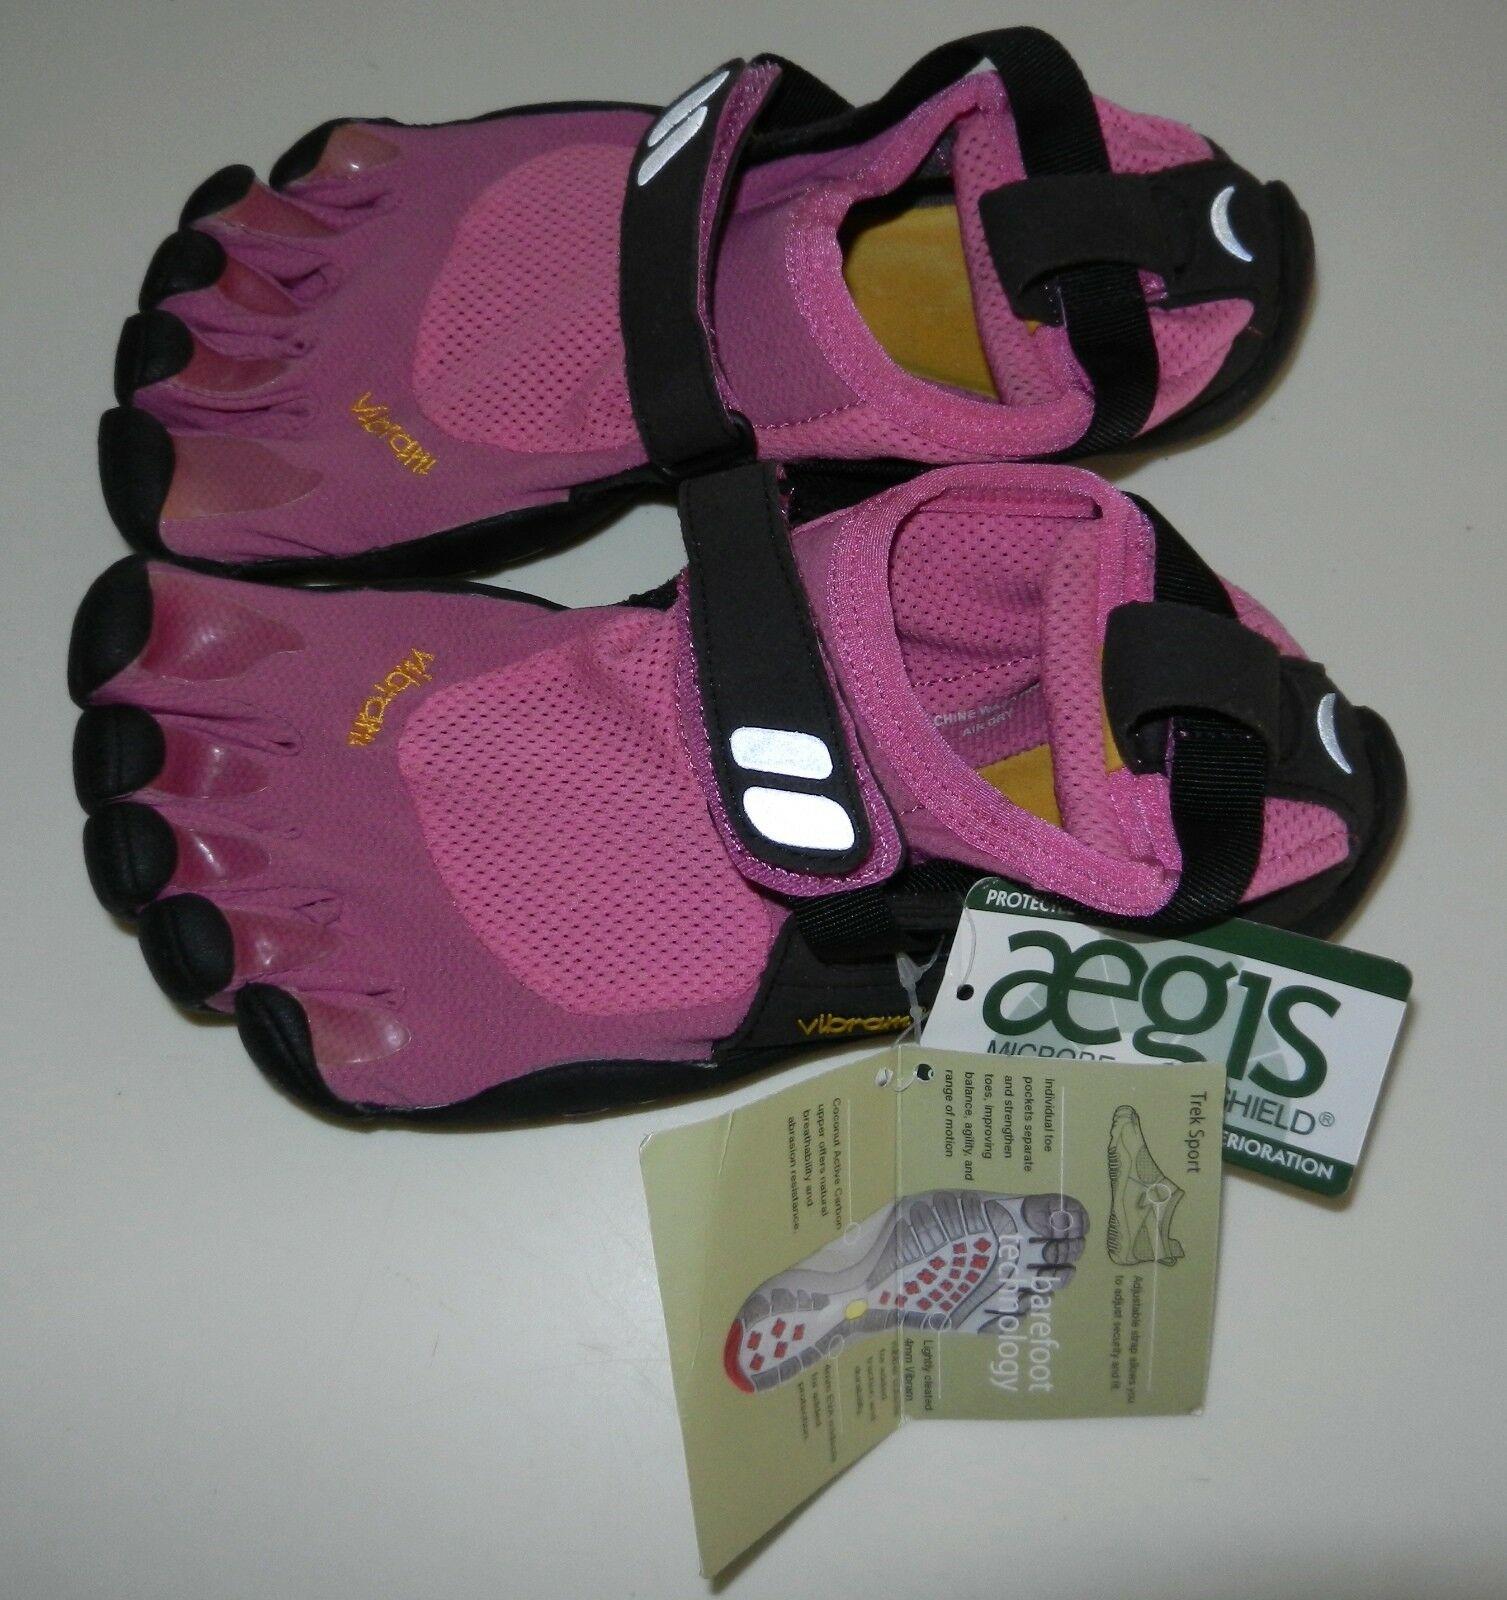 NWT WOMEN'S Vibram FiveFingers TrekSport 37 OR 38 PINK SHOES